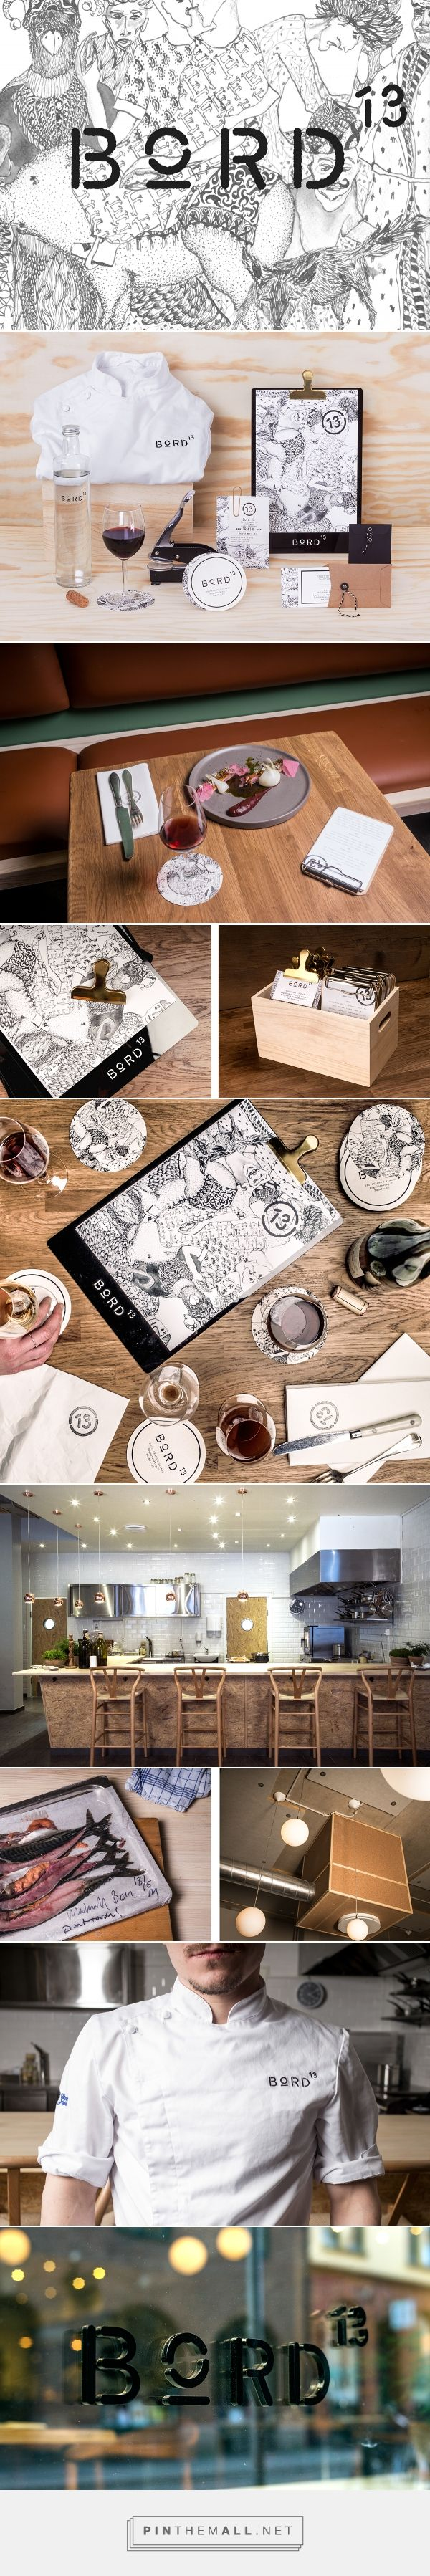 Bord 13 Restaurant Branding by Snask | Fivestar Branding Agency – Design and Branding Agency & Curated Inspiration Gallery